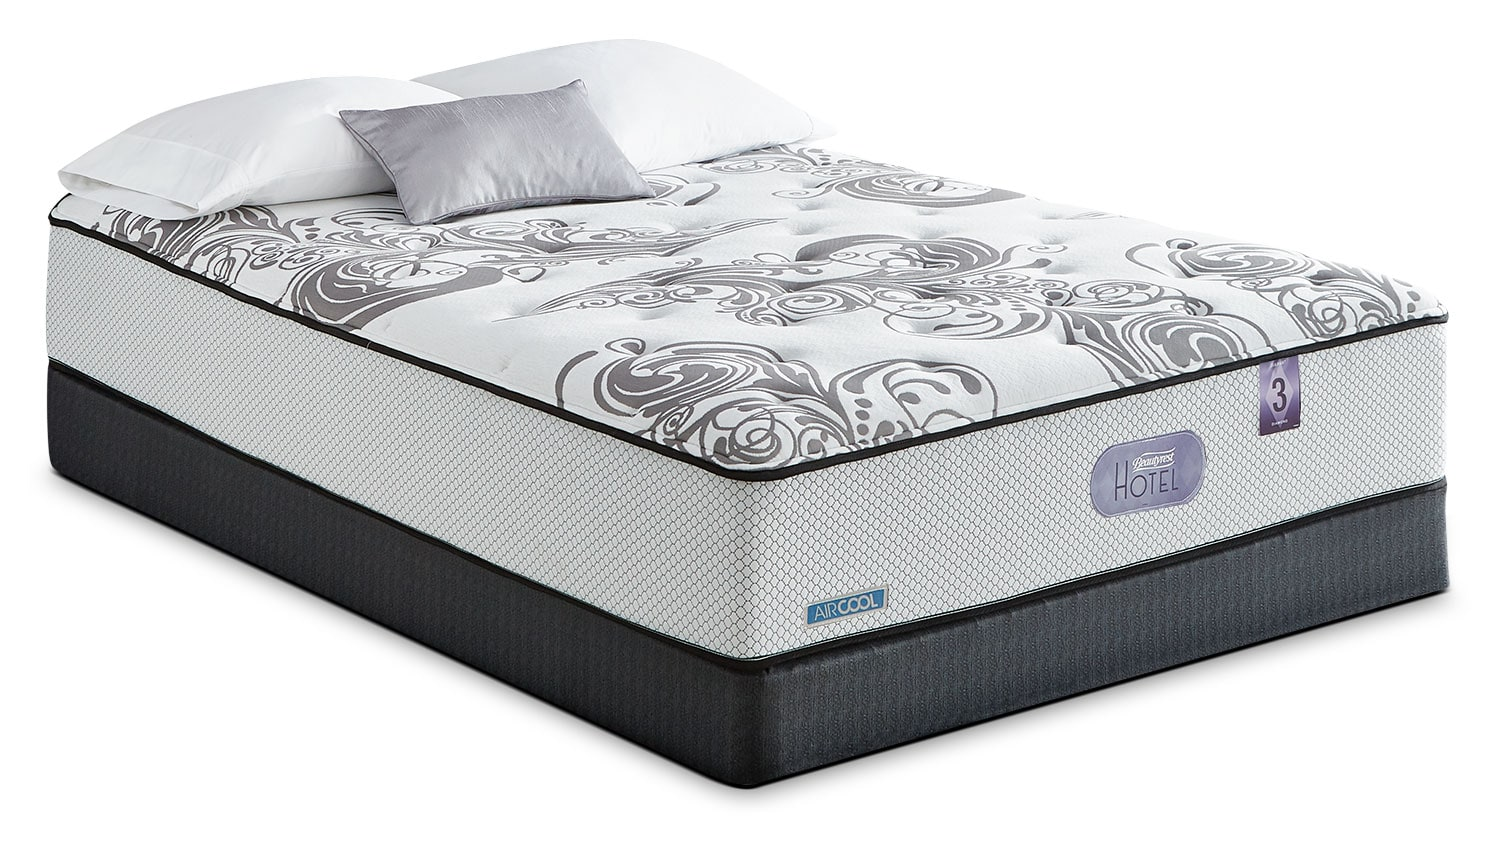 Mattresses and Bedding - Simmons Beautyrest® Hotel Diamond 3.0 Tight-Top Firm Full Mattress Set